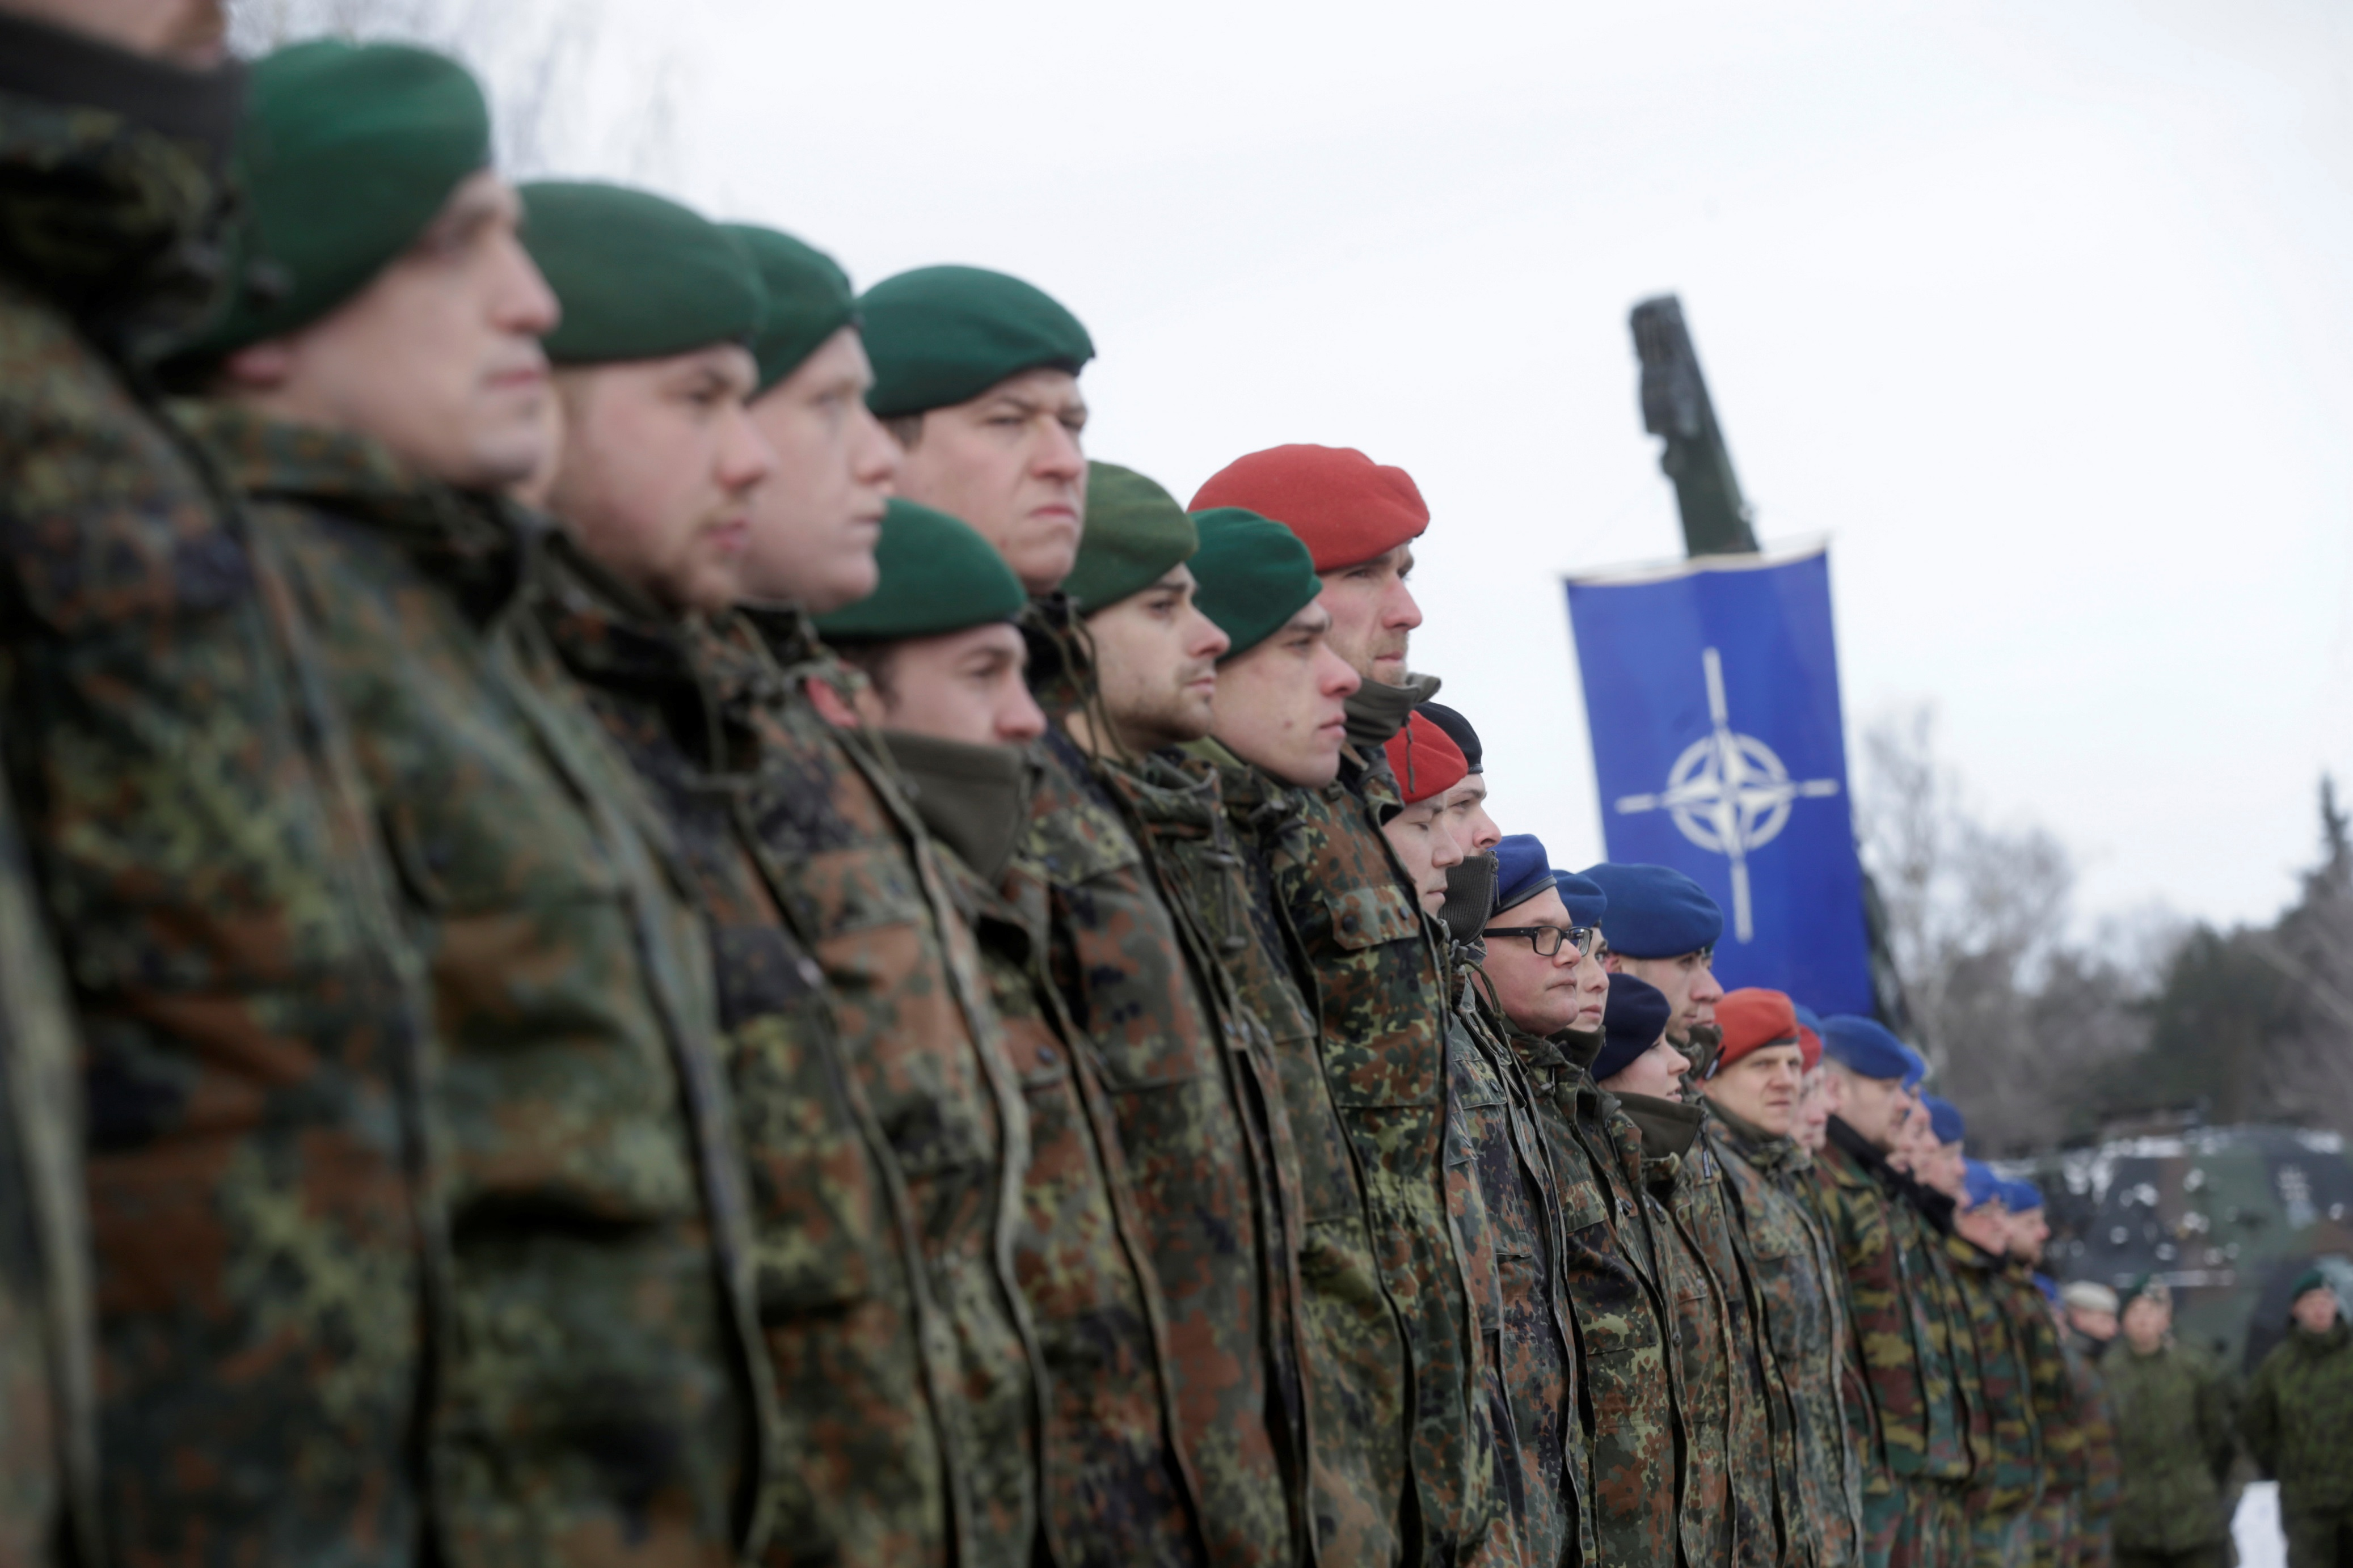 Facing Russian threat, NATO boosts operations for the first time since the Cold War